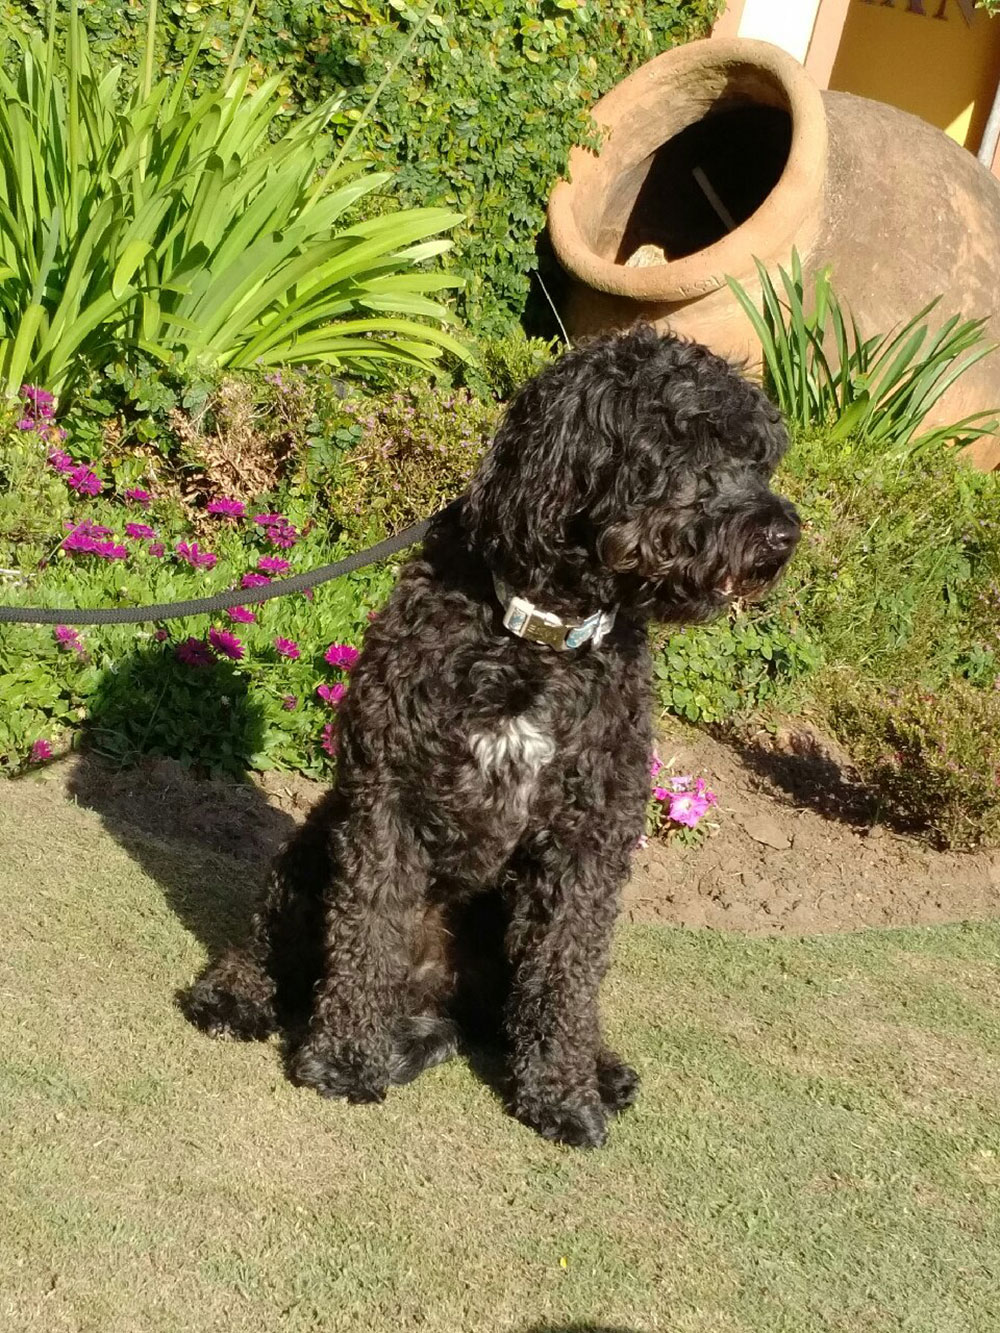 Jesse, a Portuguese Water Dog, belongs to Geoffrey. Jesse is travelling with us to rejoin Geoffrey in Yorkshire.